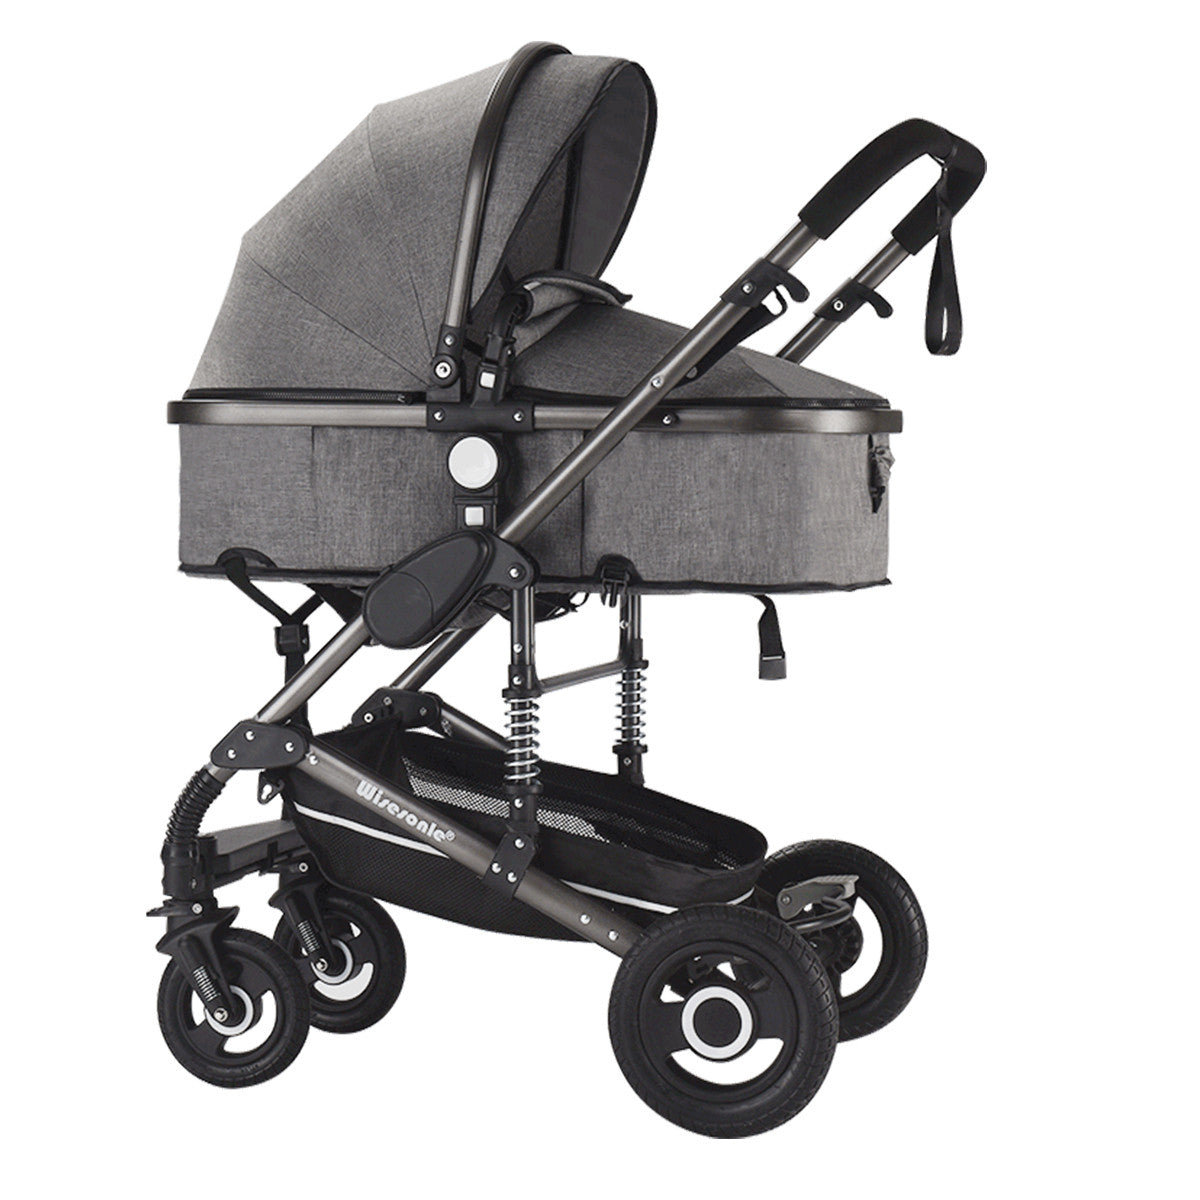 3 in 1 Comfy Baby Stroller With Car Seat Travel System Combo